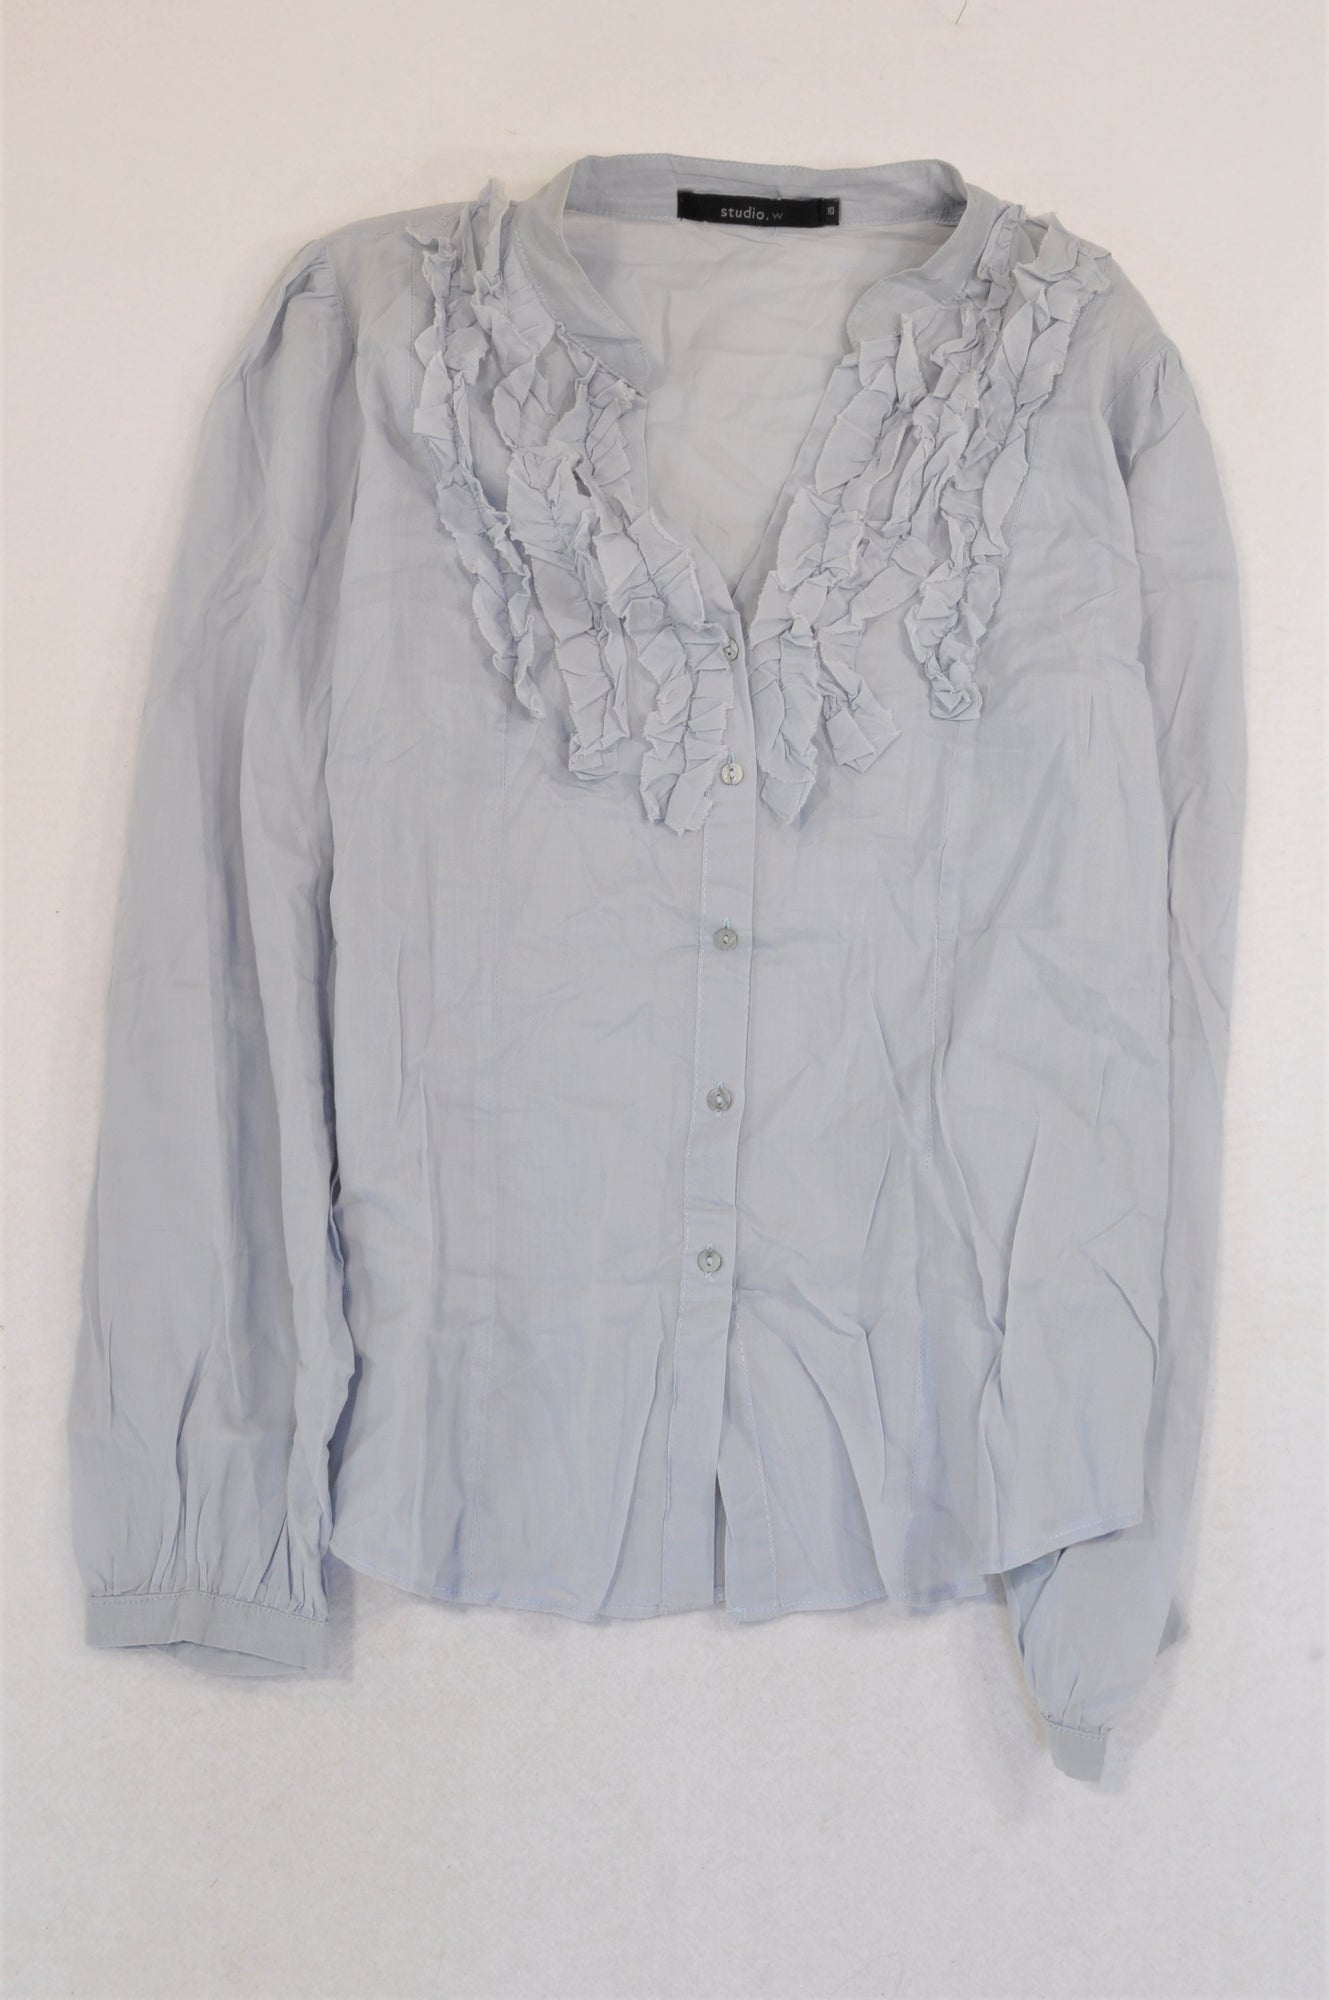 Studio.W Dusty Grey Ruffle Blouse Women Size 10